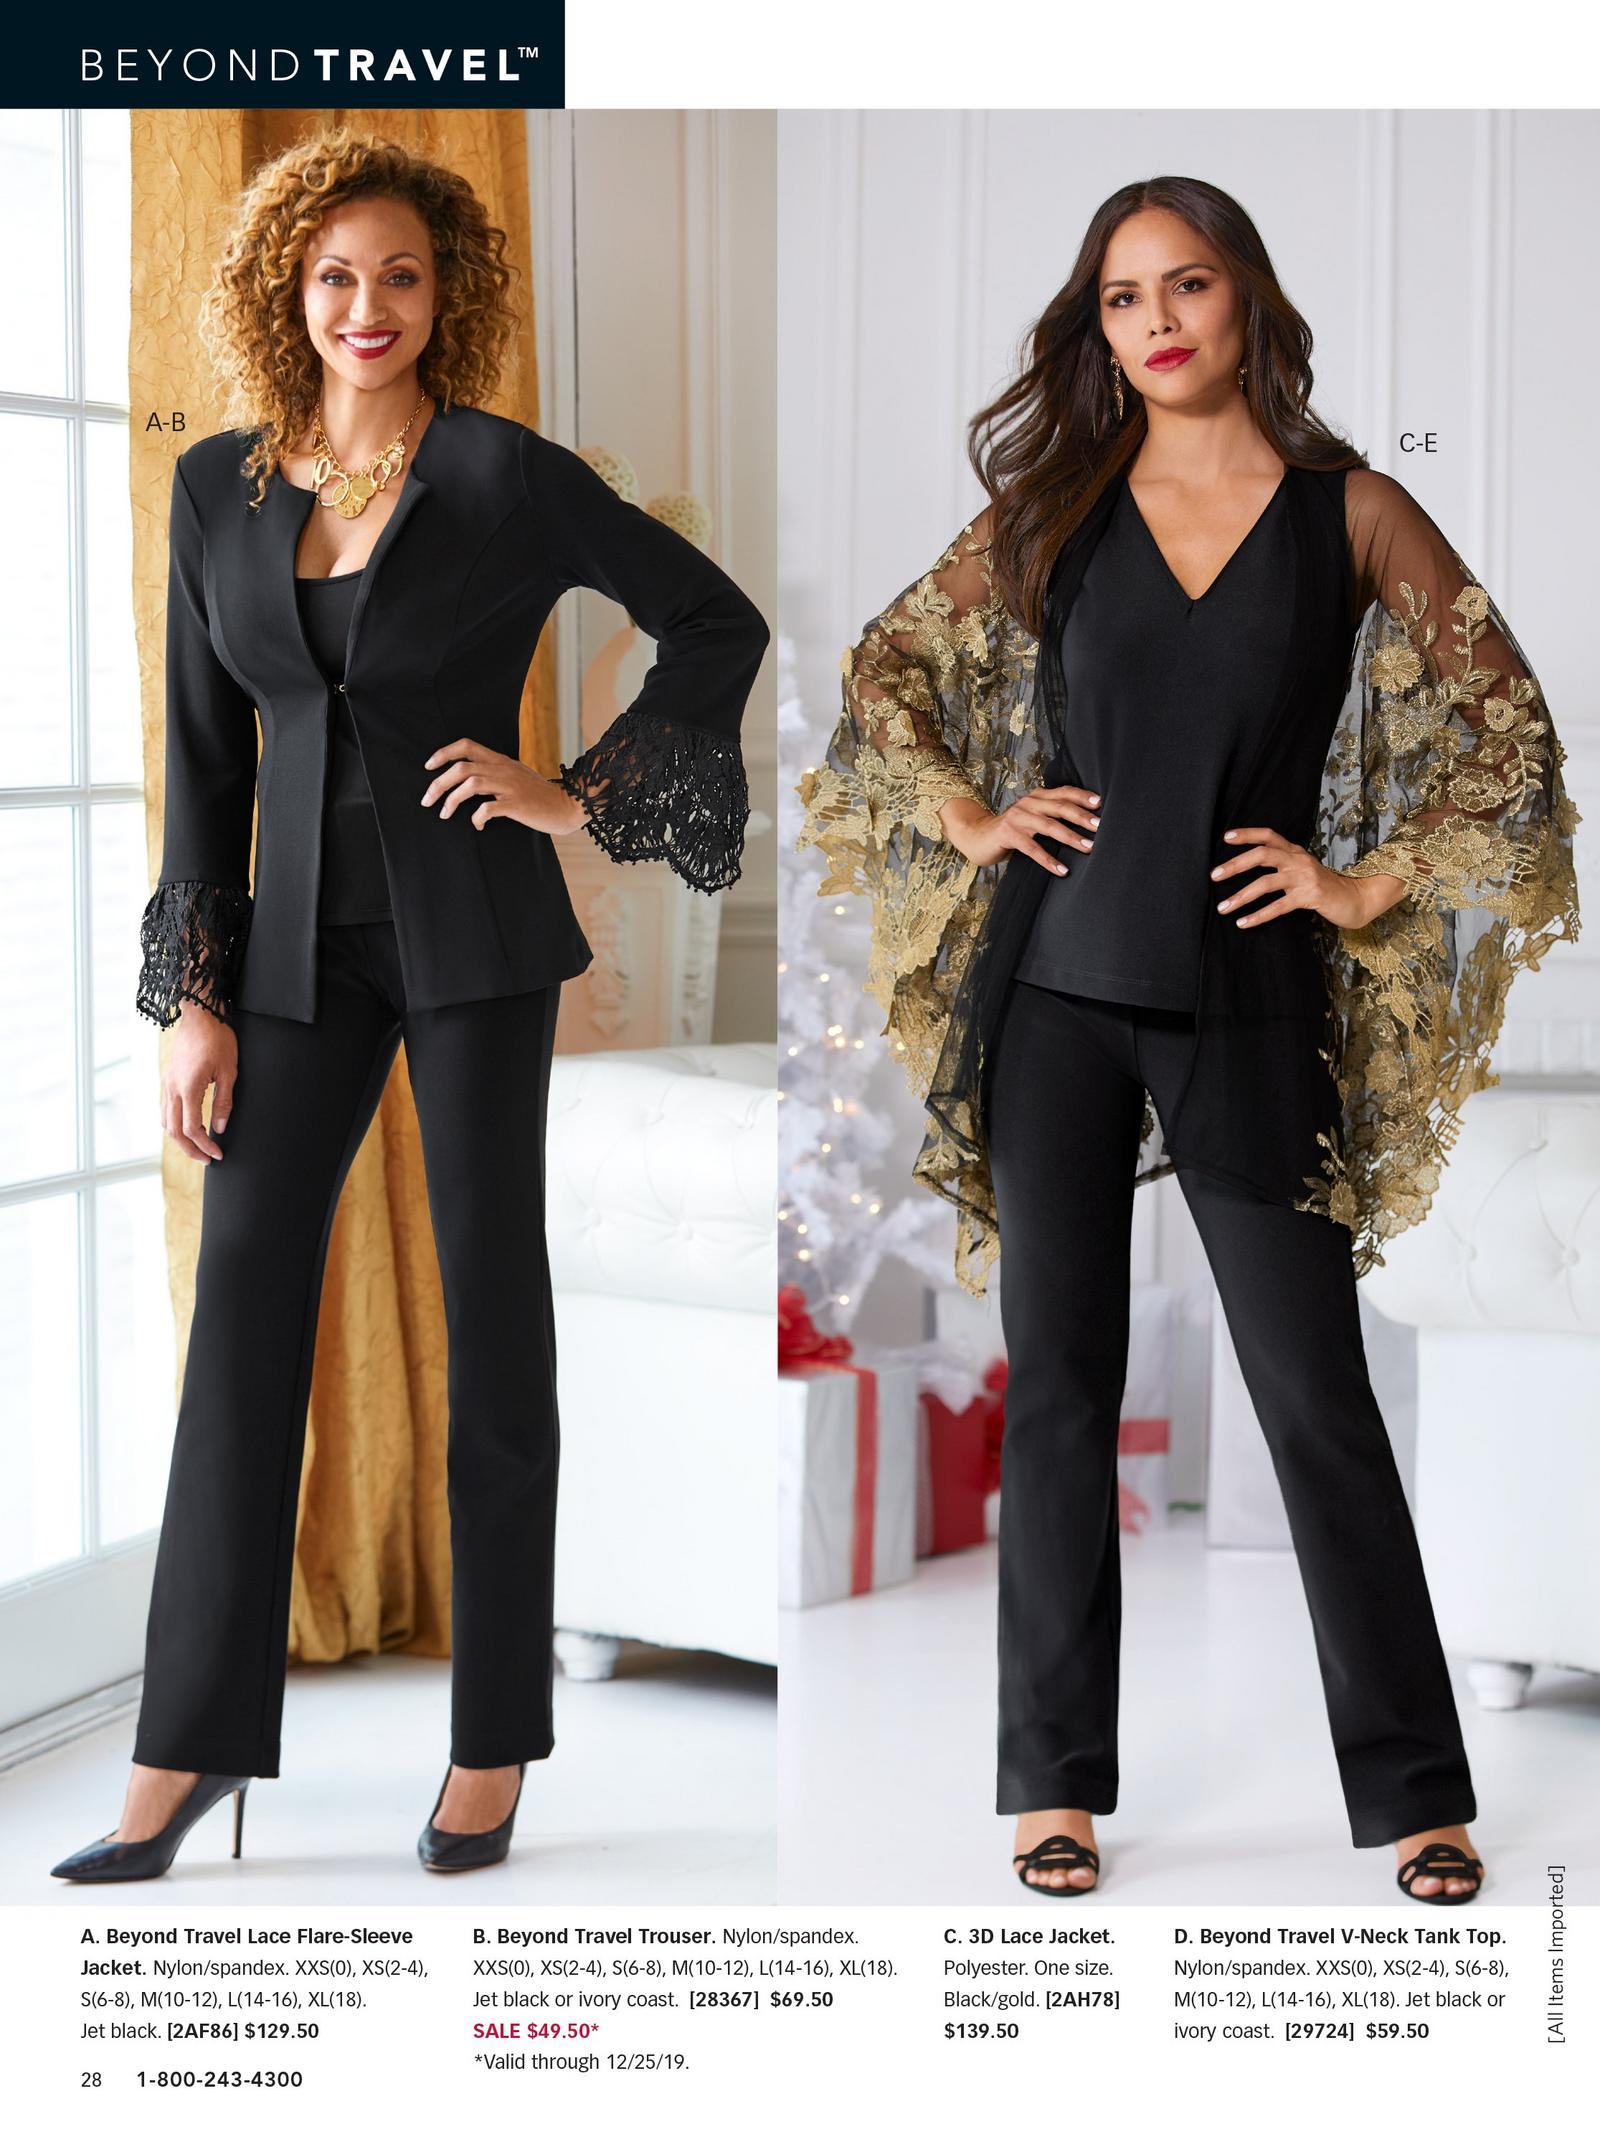 left: model wearing lace flare-sleeve jacket in black over black pants and a black tank top. right: model wearing black and gold lace jacket